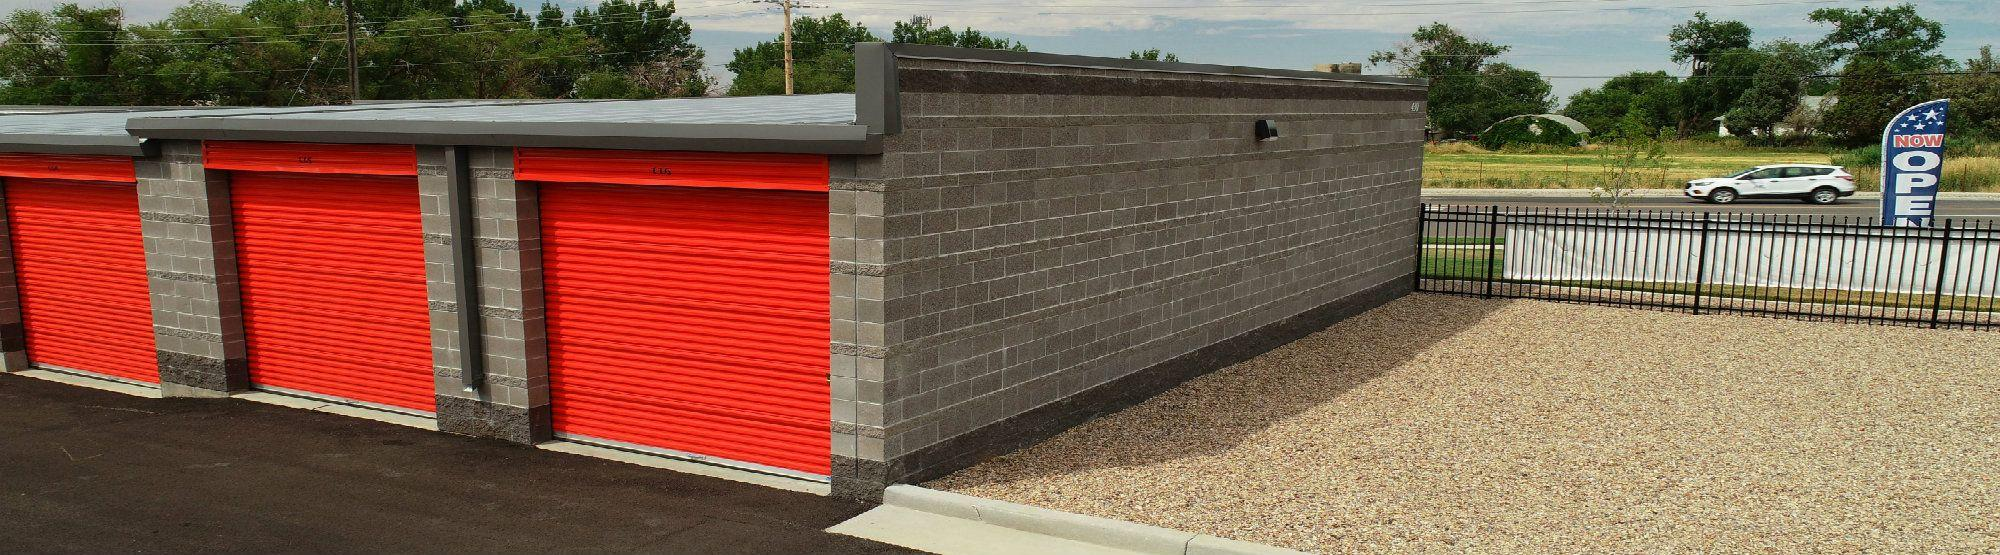 Wildcat Storage is Fenced & Gated